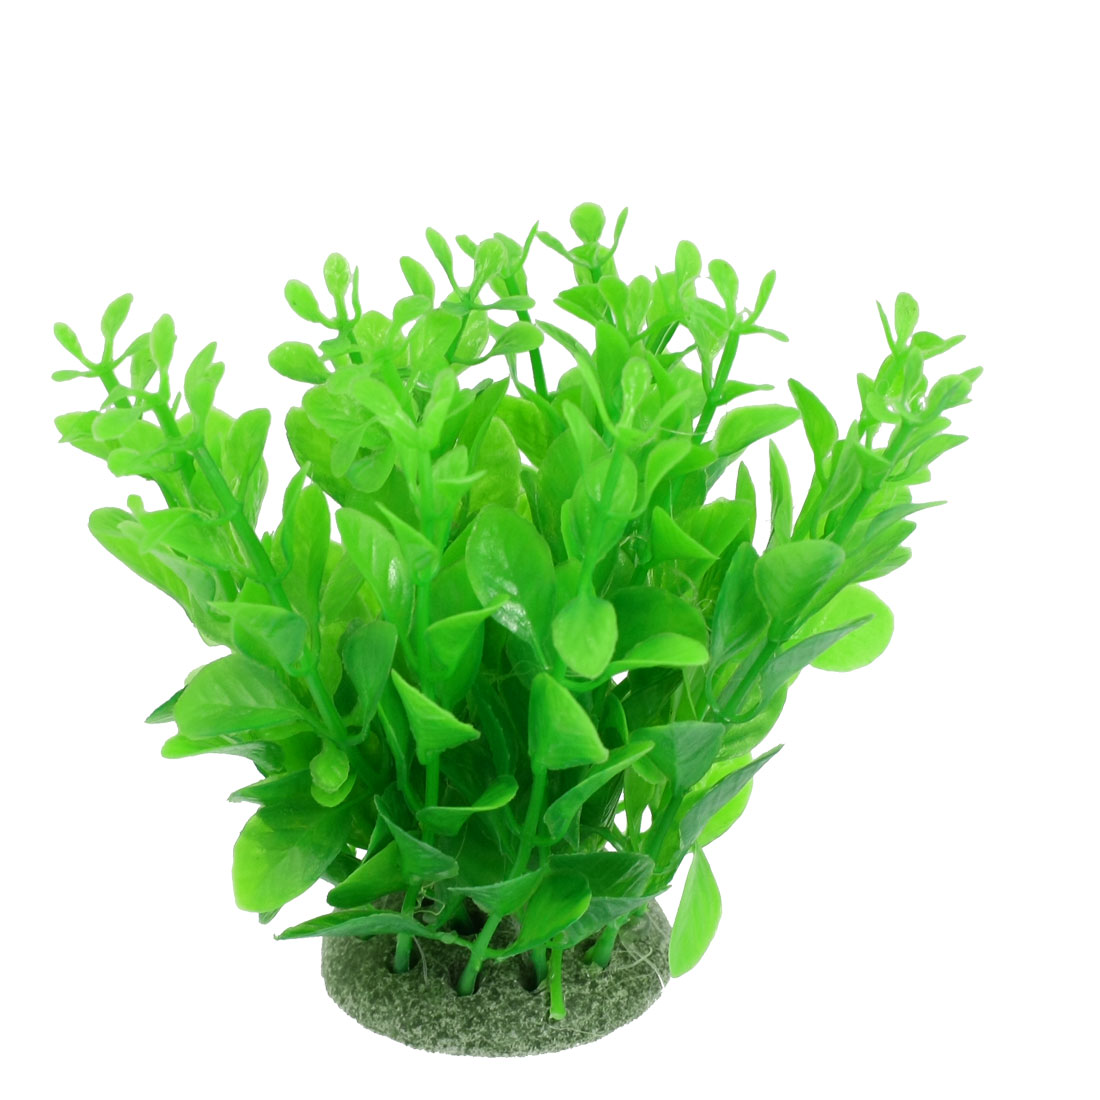 Aquarium Fish Tank Green Plastic Artificial Grass Plant 4.3""